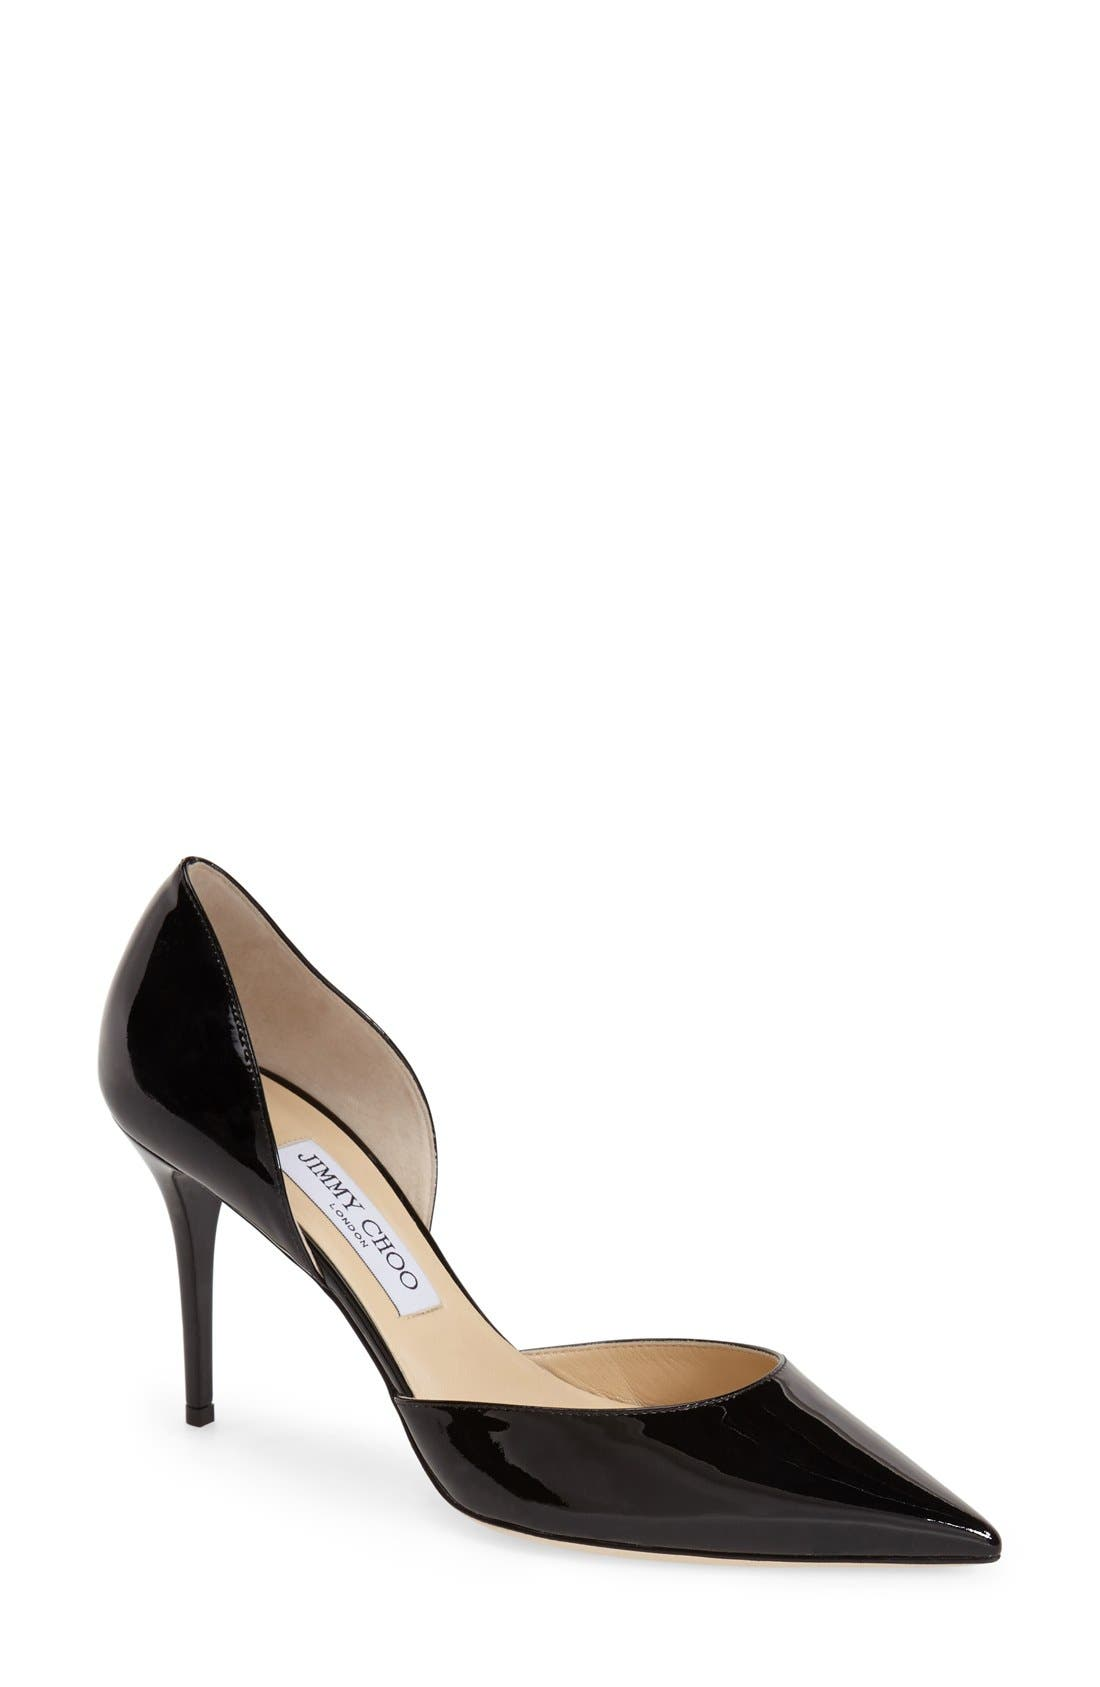 Alternate Image 1 Selected - Jimmy Choo 'Addison' d'Orsay Pump (Women)